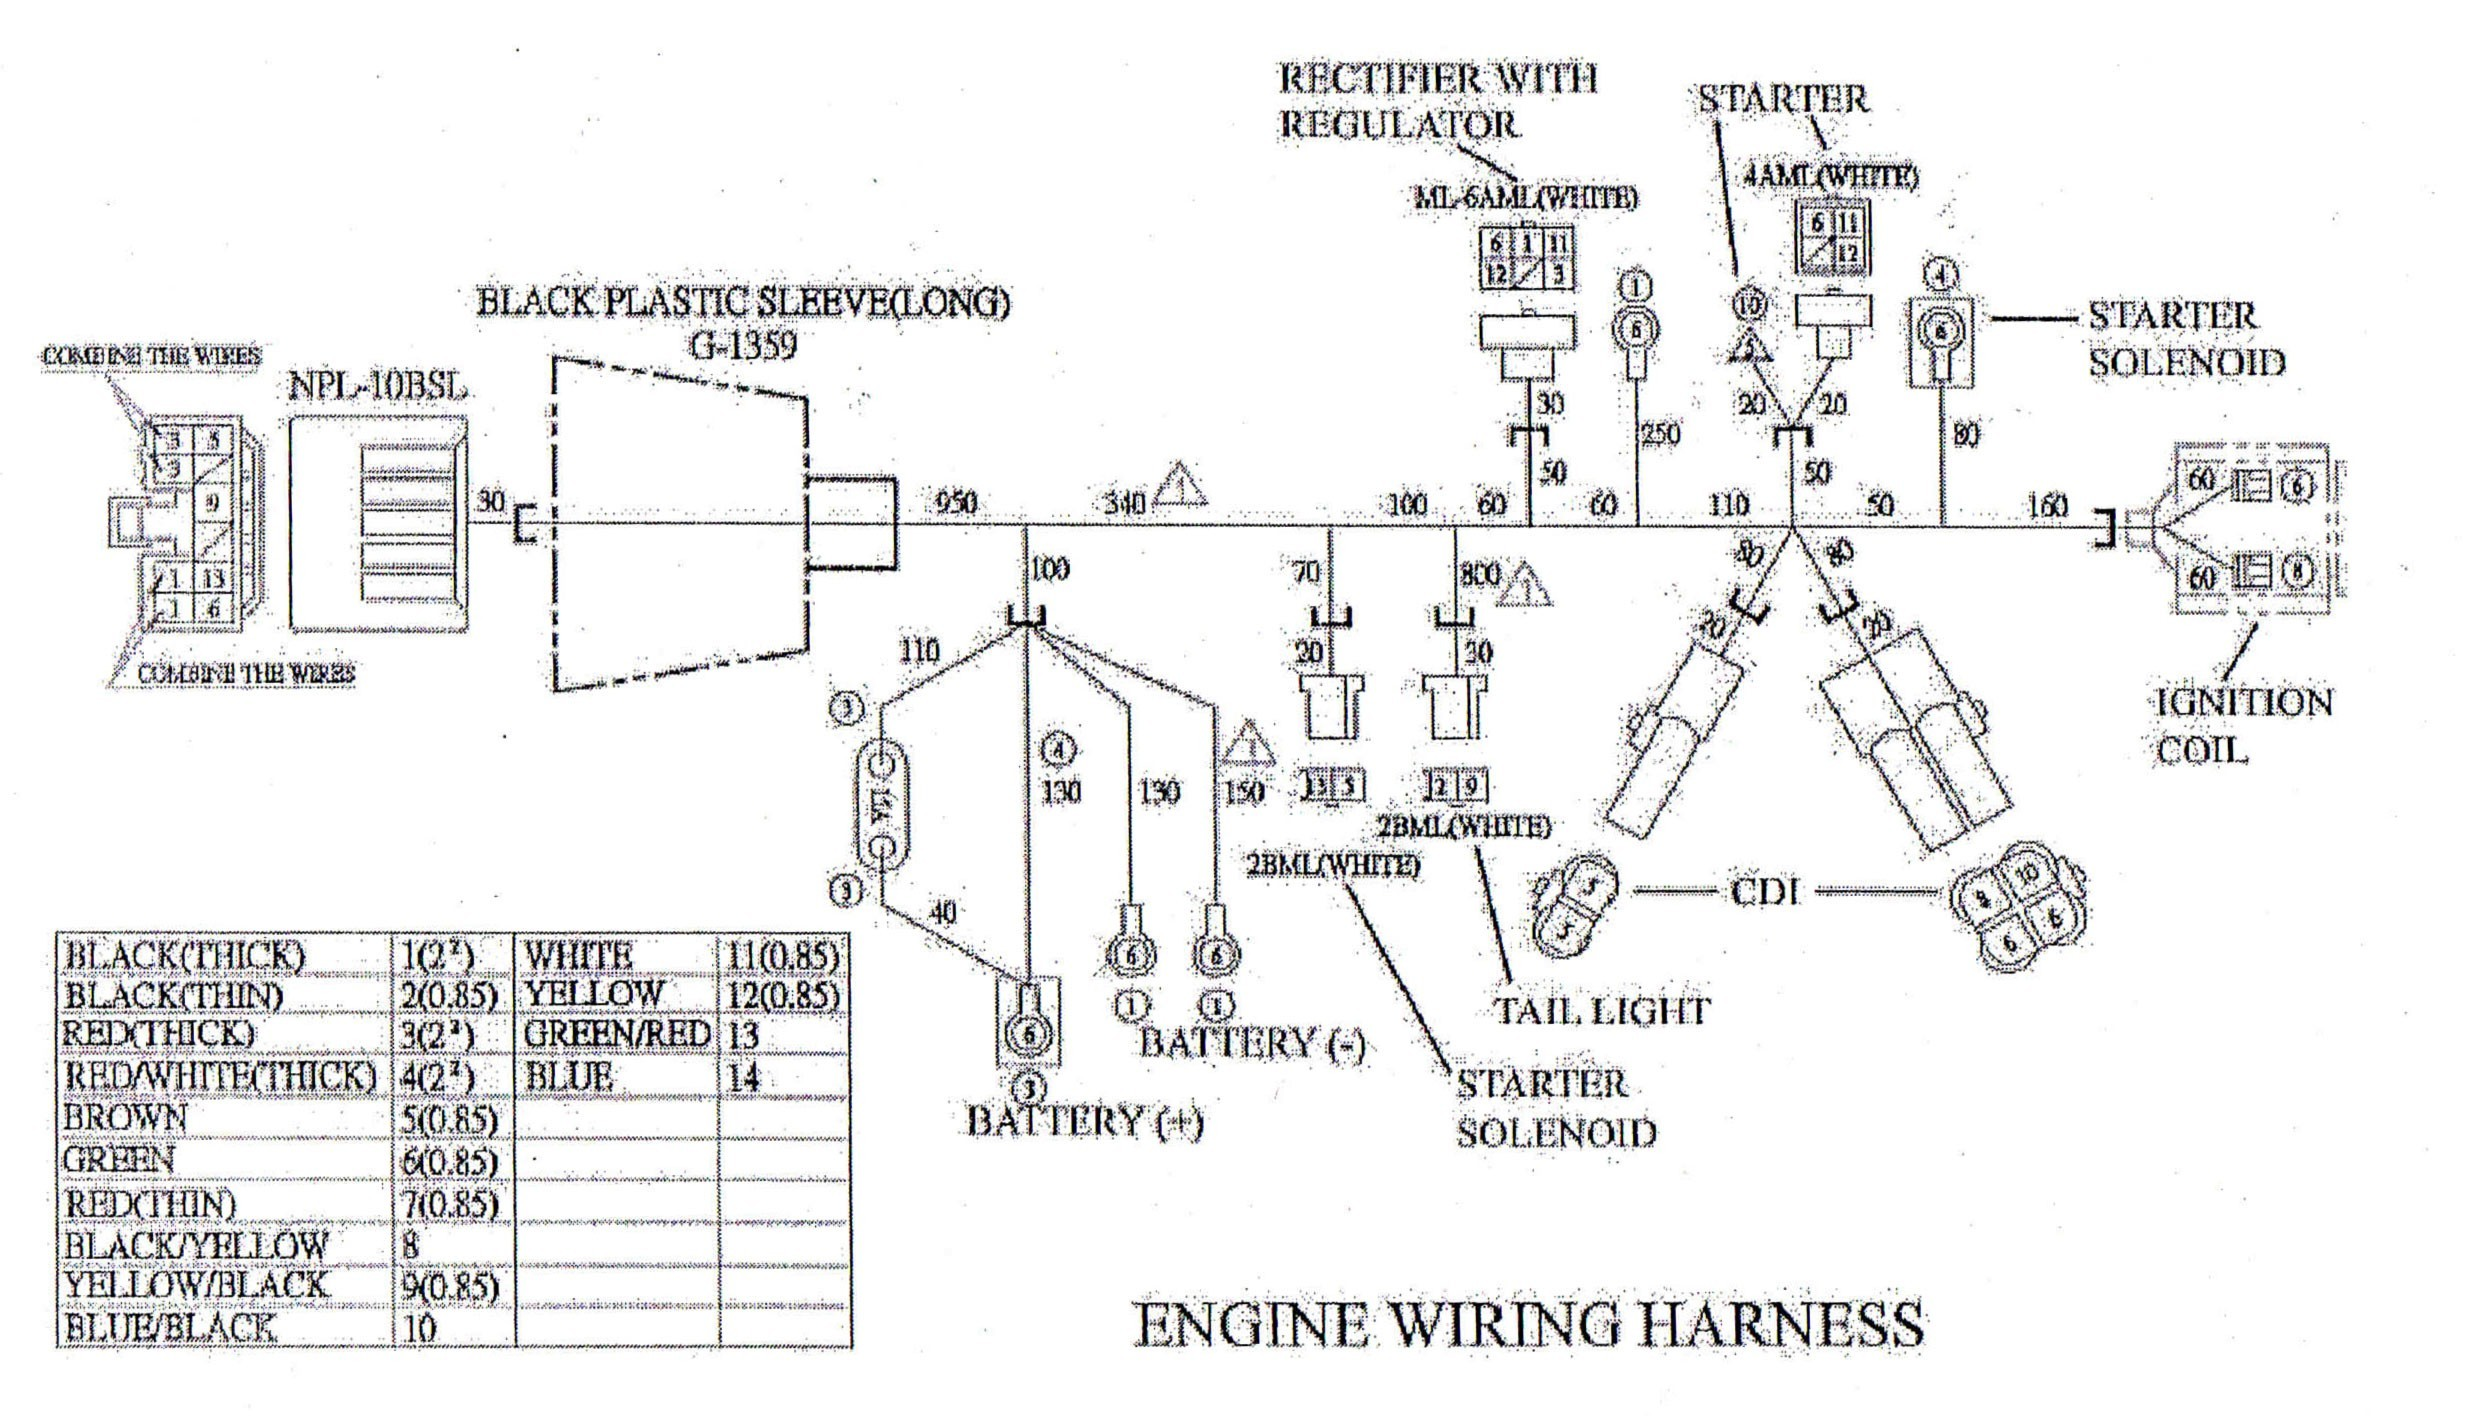 L5 20 Wiring Diagram Books Of Honda Cl70 Schematic Diagrams Rh Ogmconsulting Co